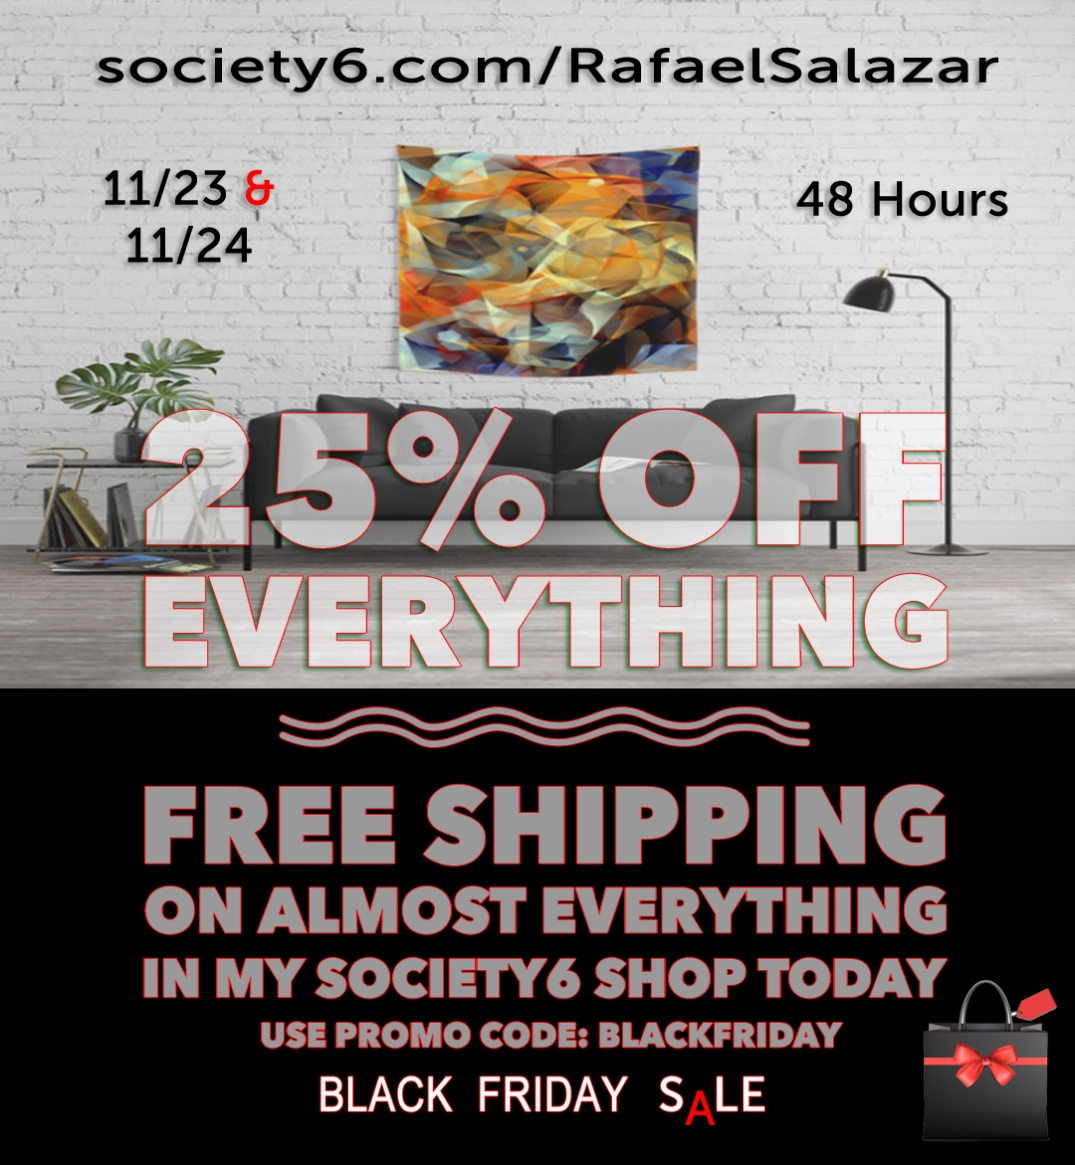 Early Black Friday - Rafael Salazar at Society6